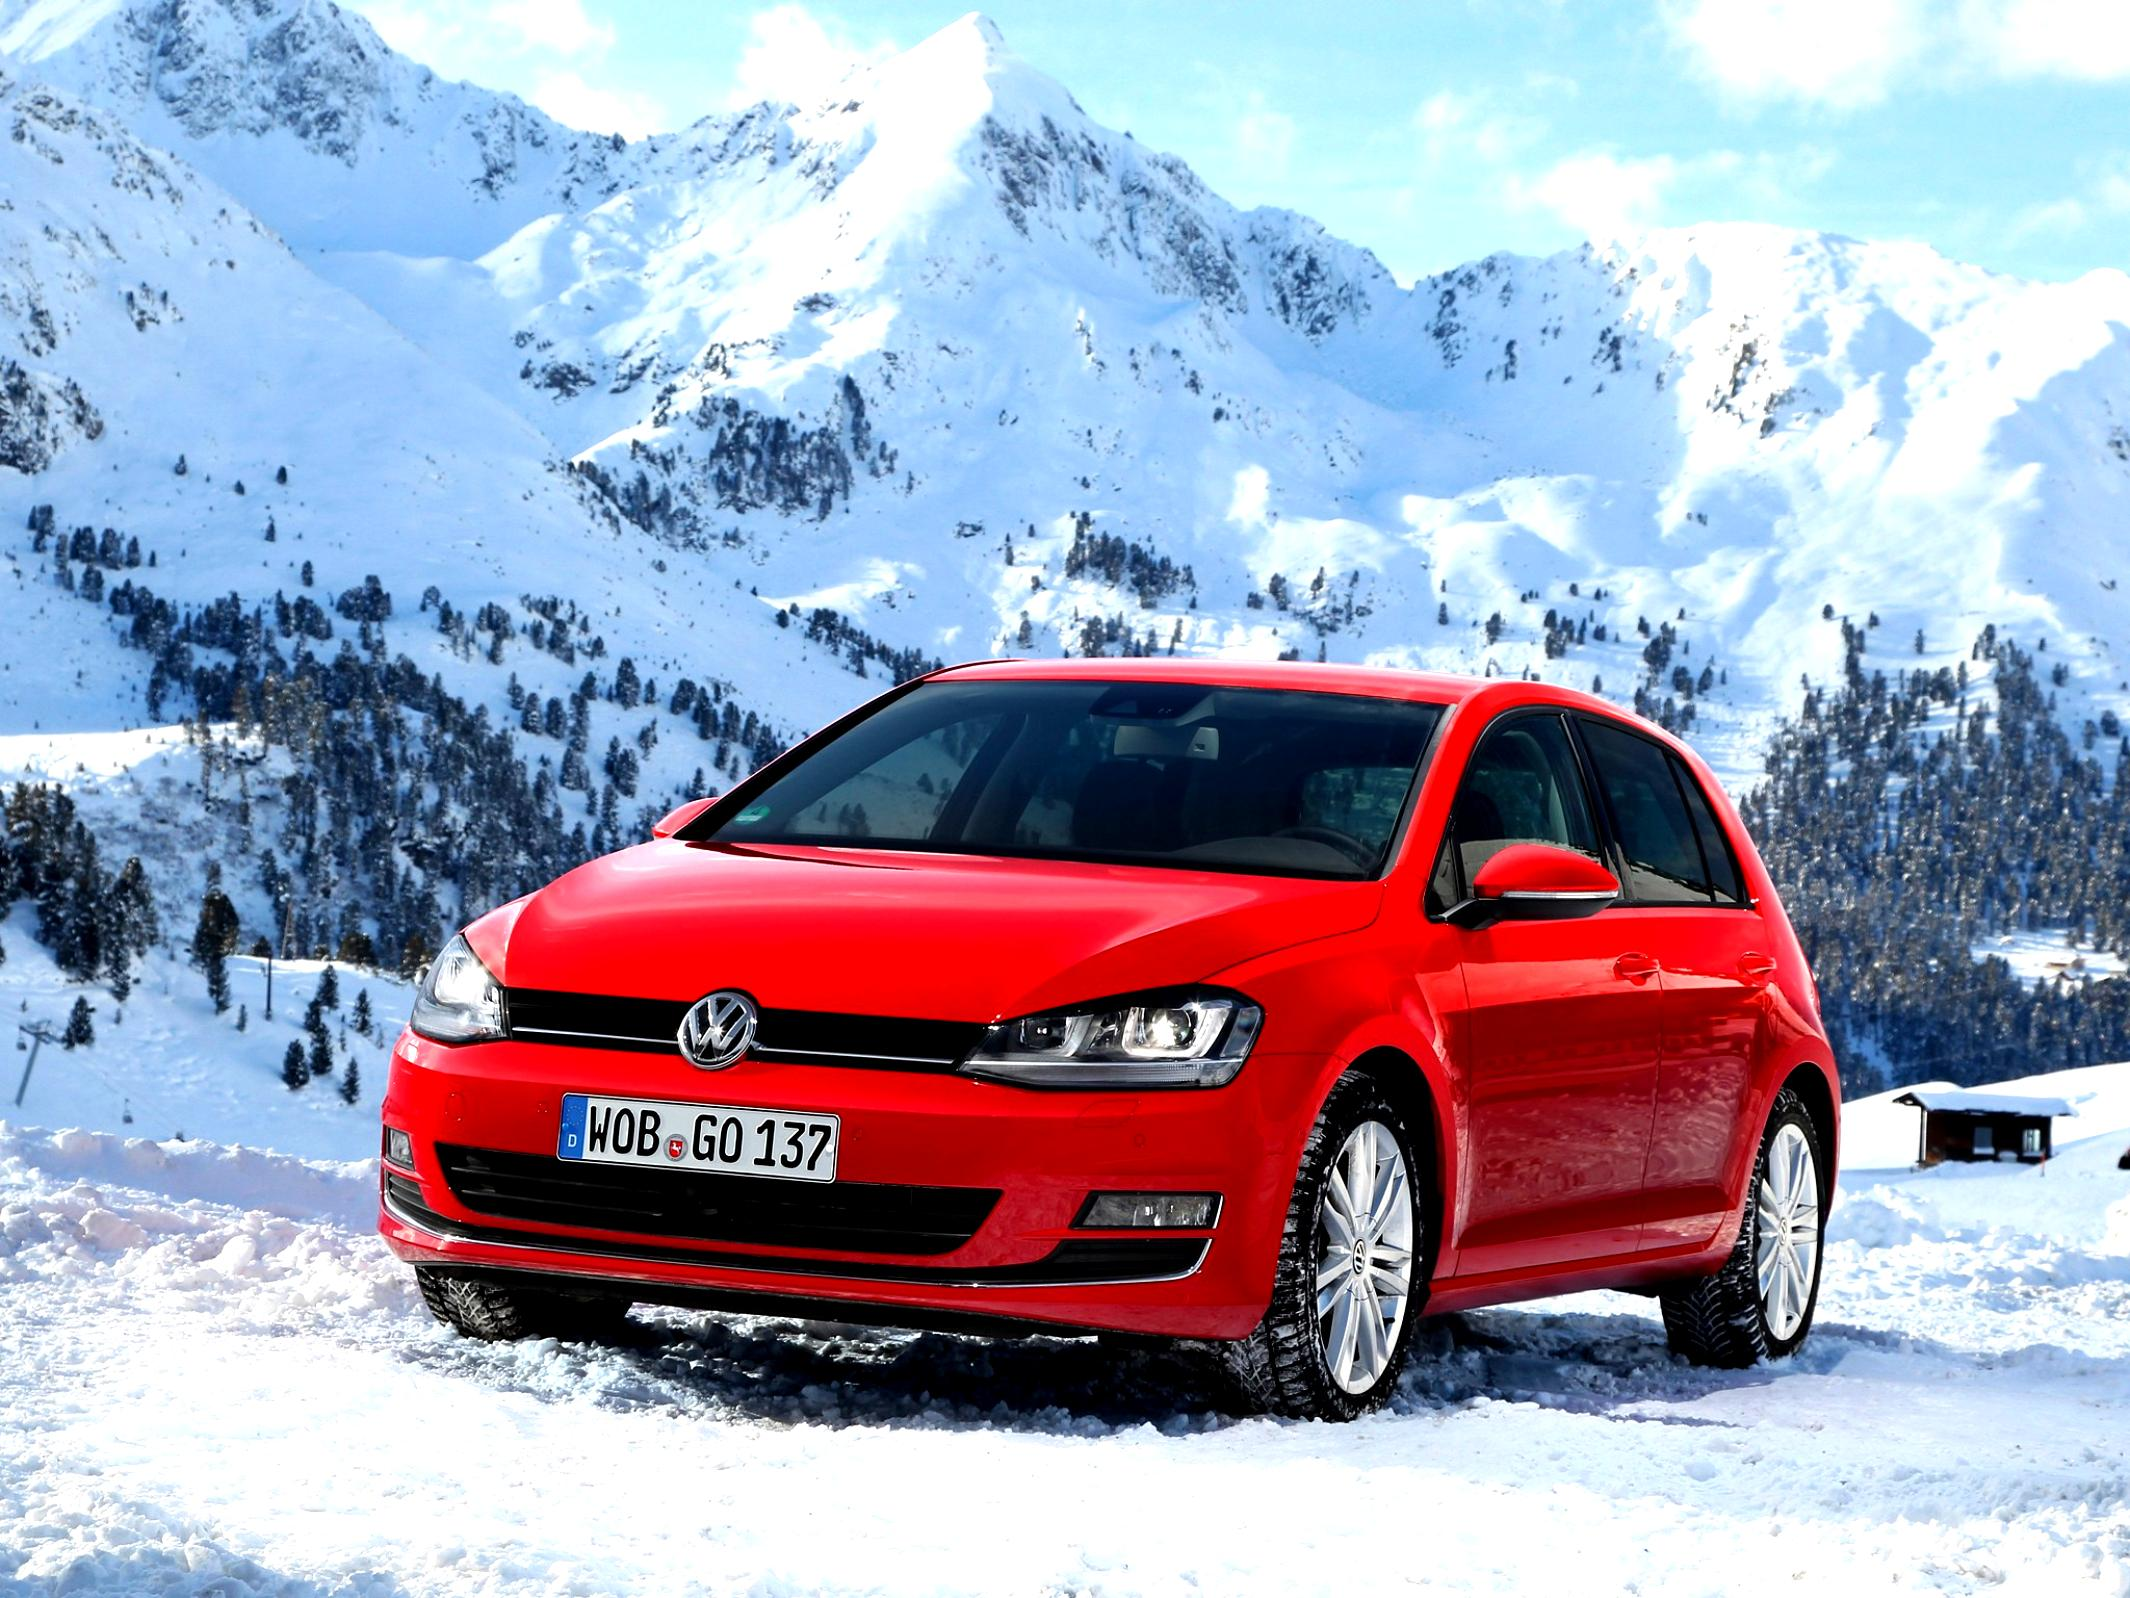 Volkswagen Golf VII 5 Doors 2012 #26